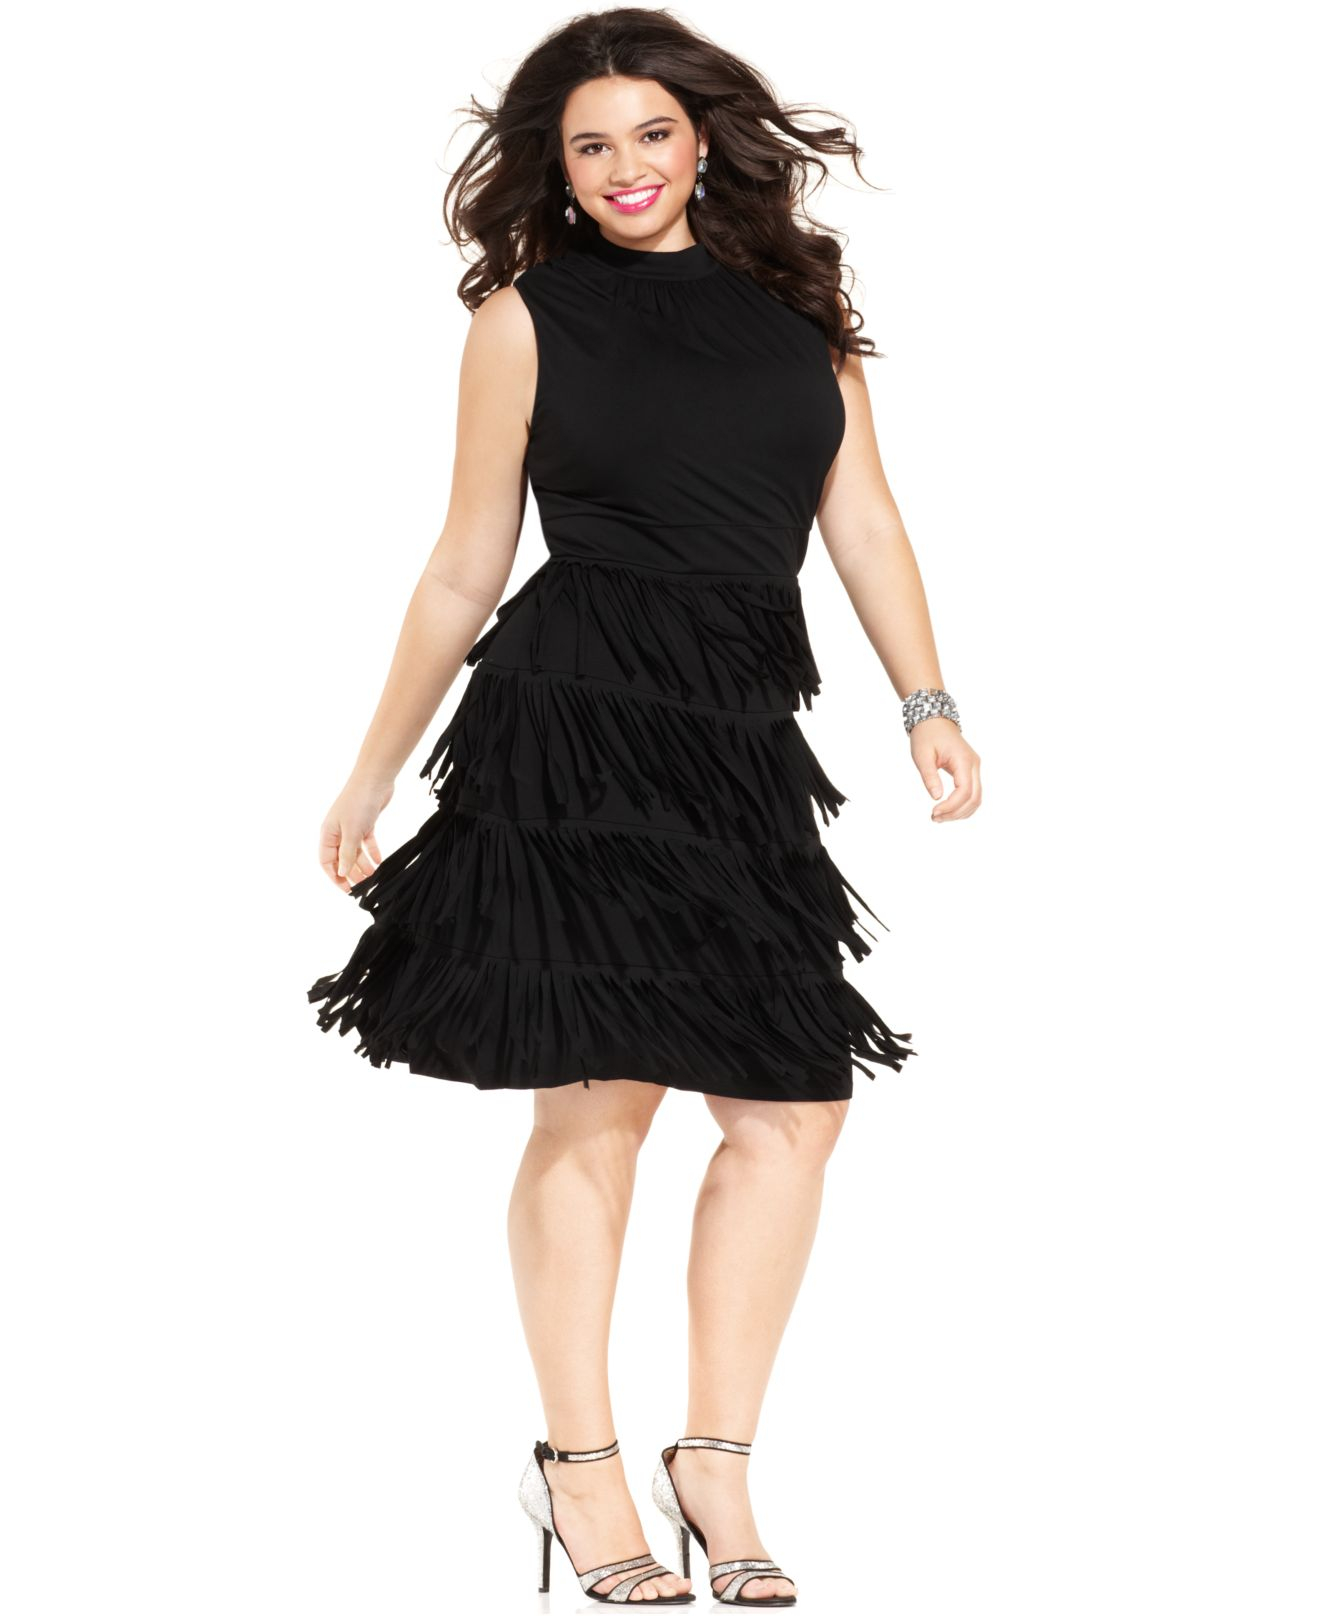 Black tiered dress plus size